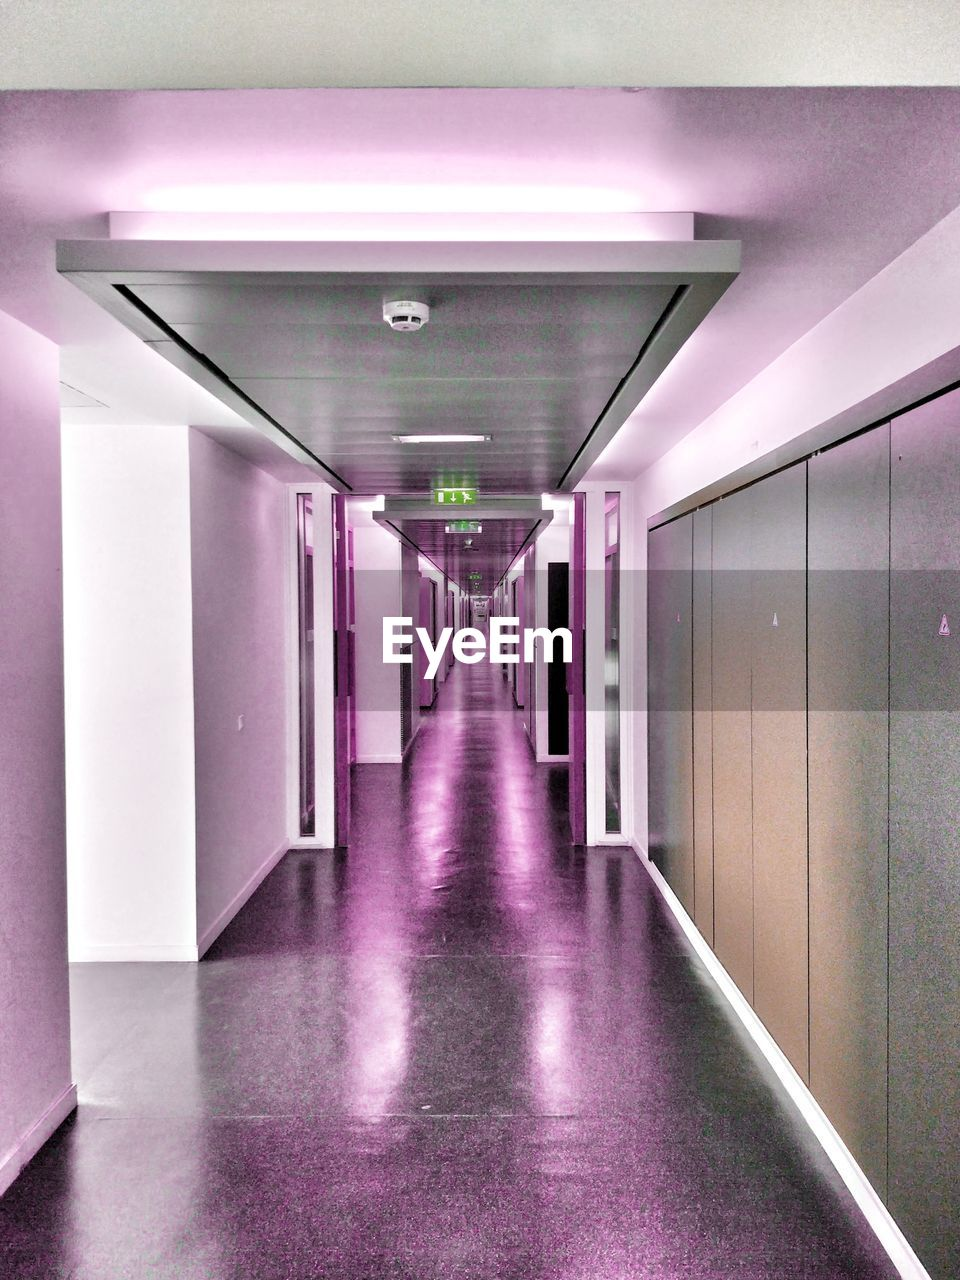 architecture, arcade, corridor, direction, the way forward, empty, indoors, building, illuminated, built structure, ceiling, diminishing perspective, no people, flooring, lighting equipment, absence, in a row, reflection, light, day, architectural column, purple, long